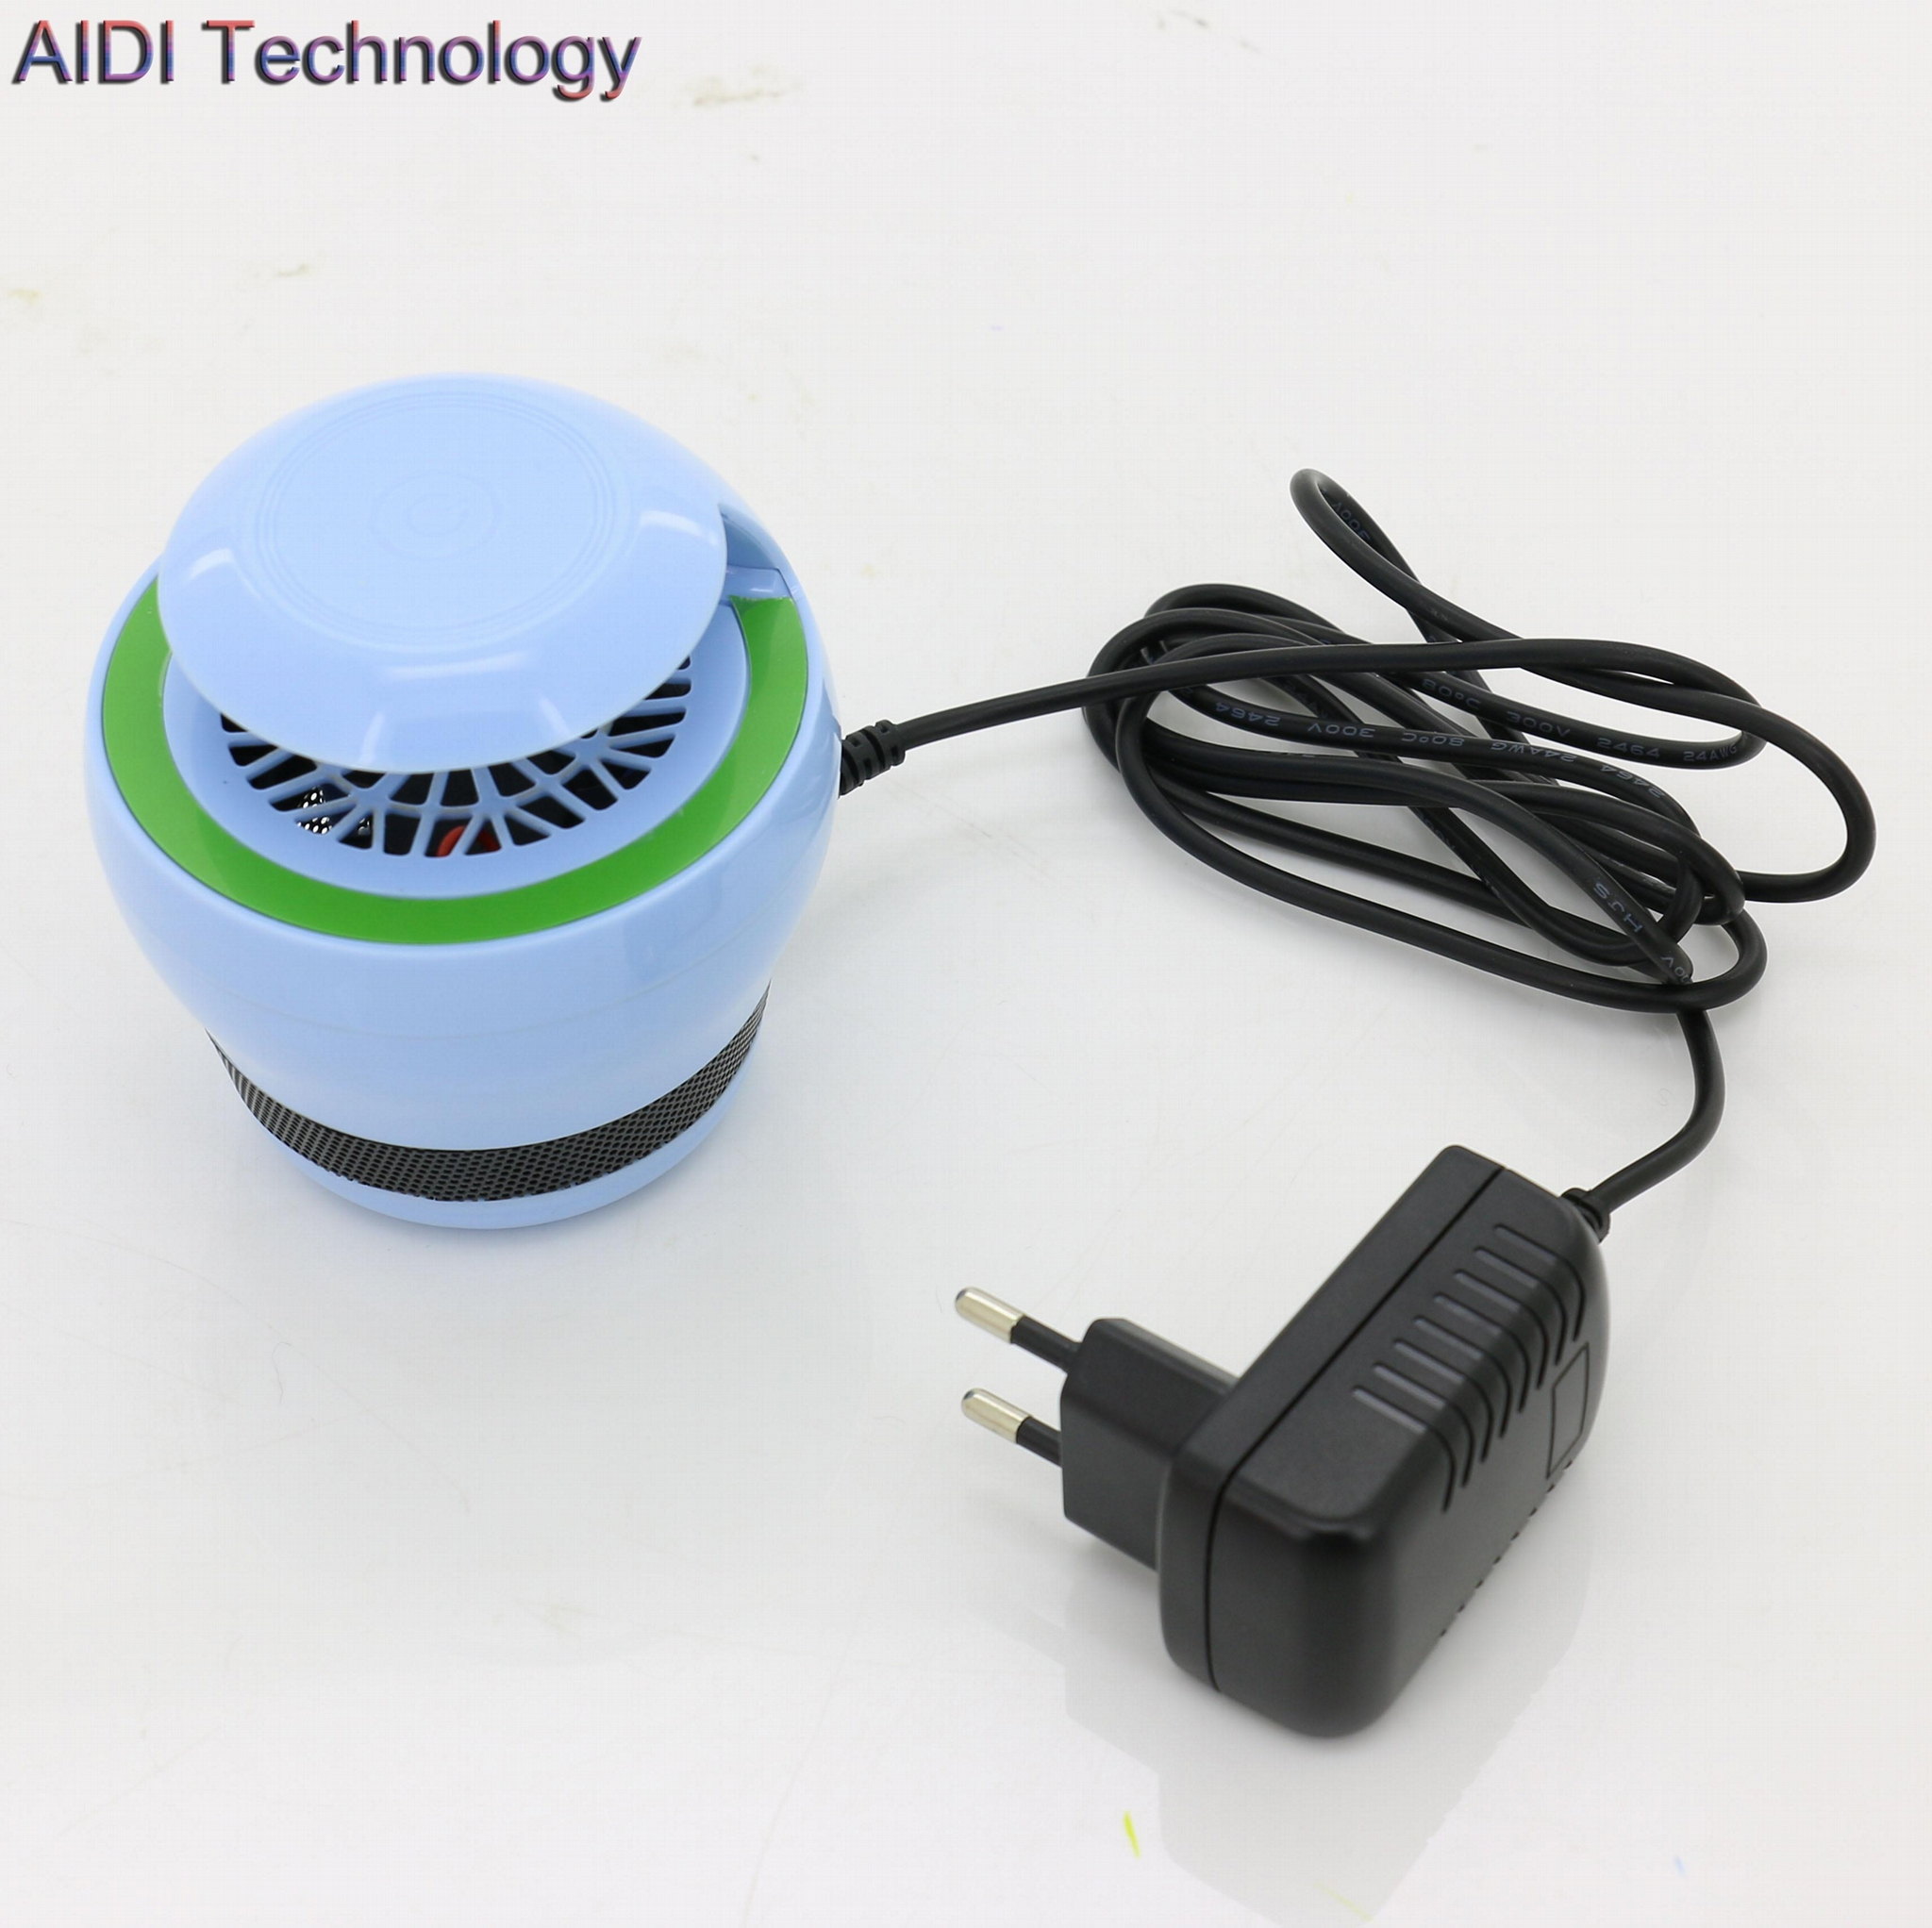 Vehicle-mounted intelligent negative ion mosquito killer air cleaner for car 2